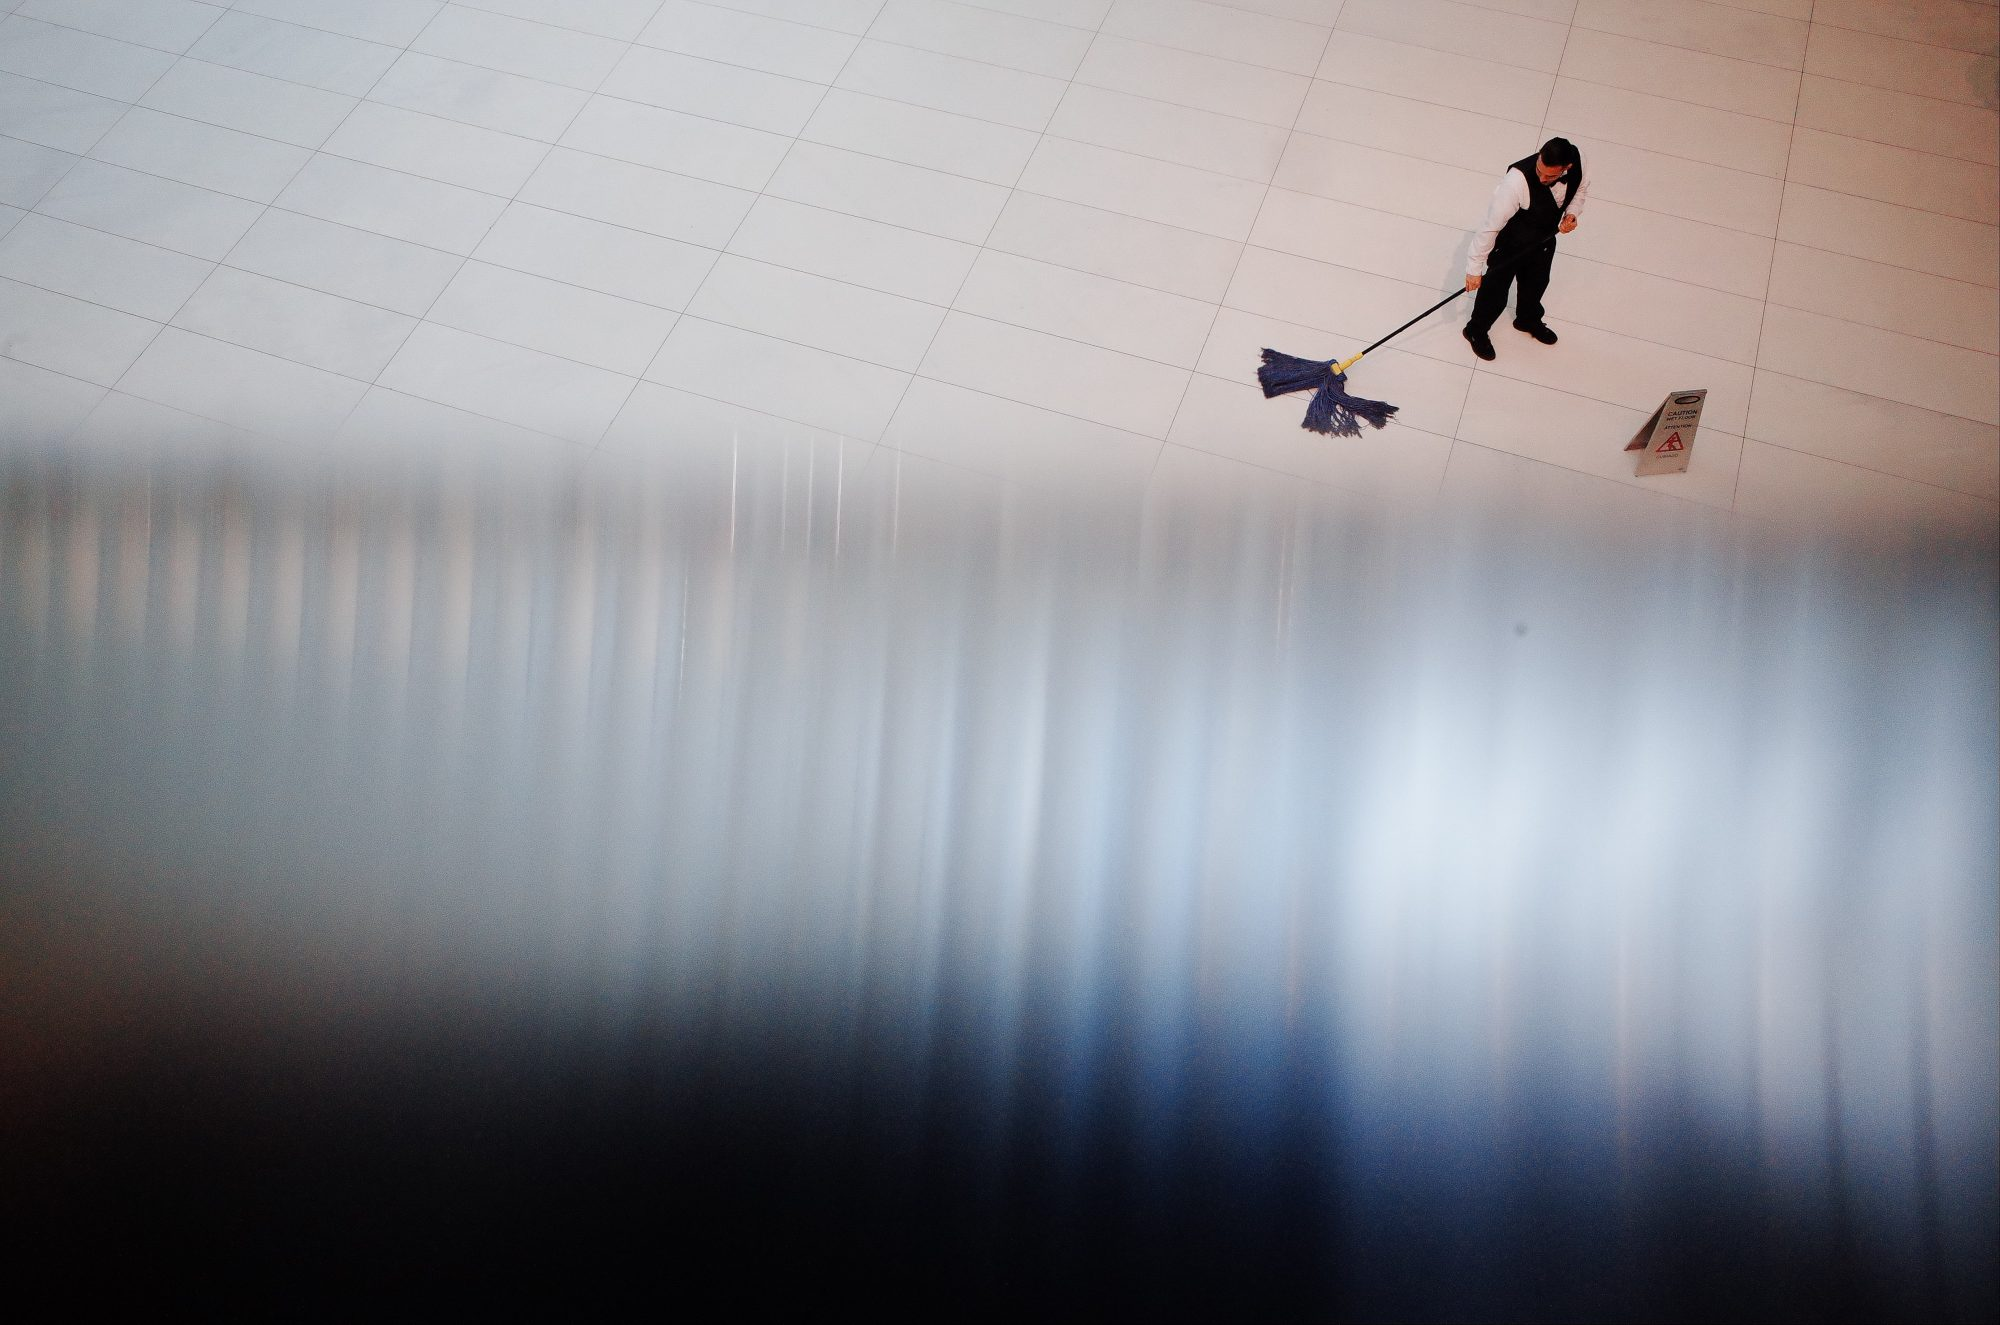 Depth, high angle. Man mopping floors. NYC, 2018